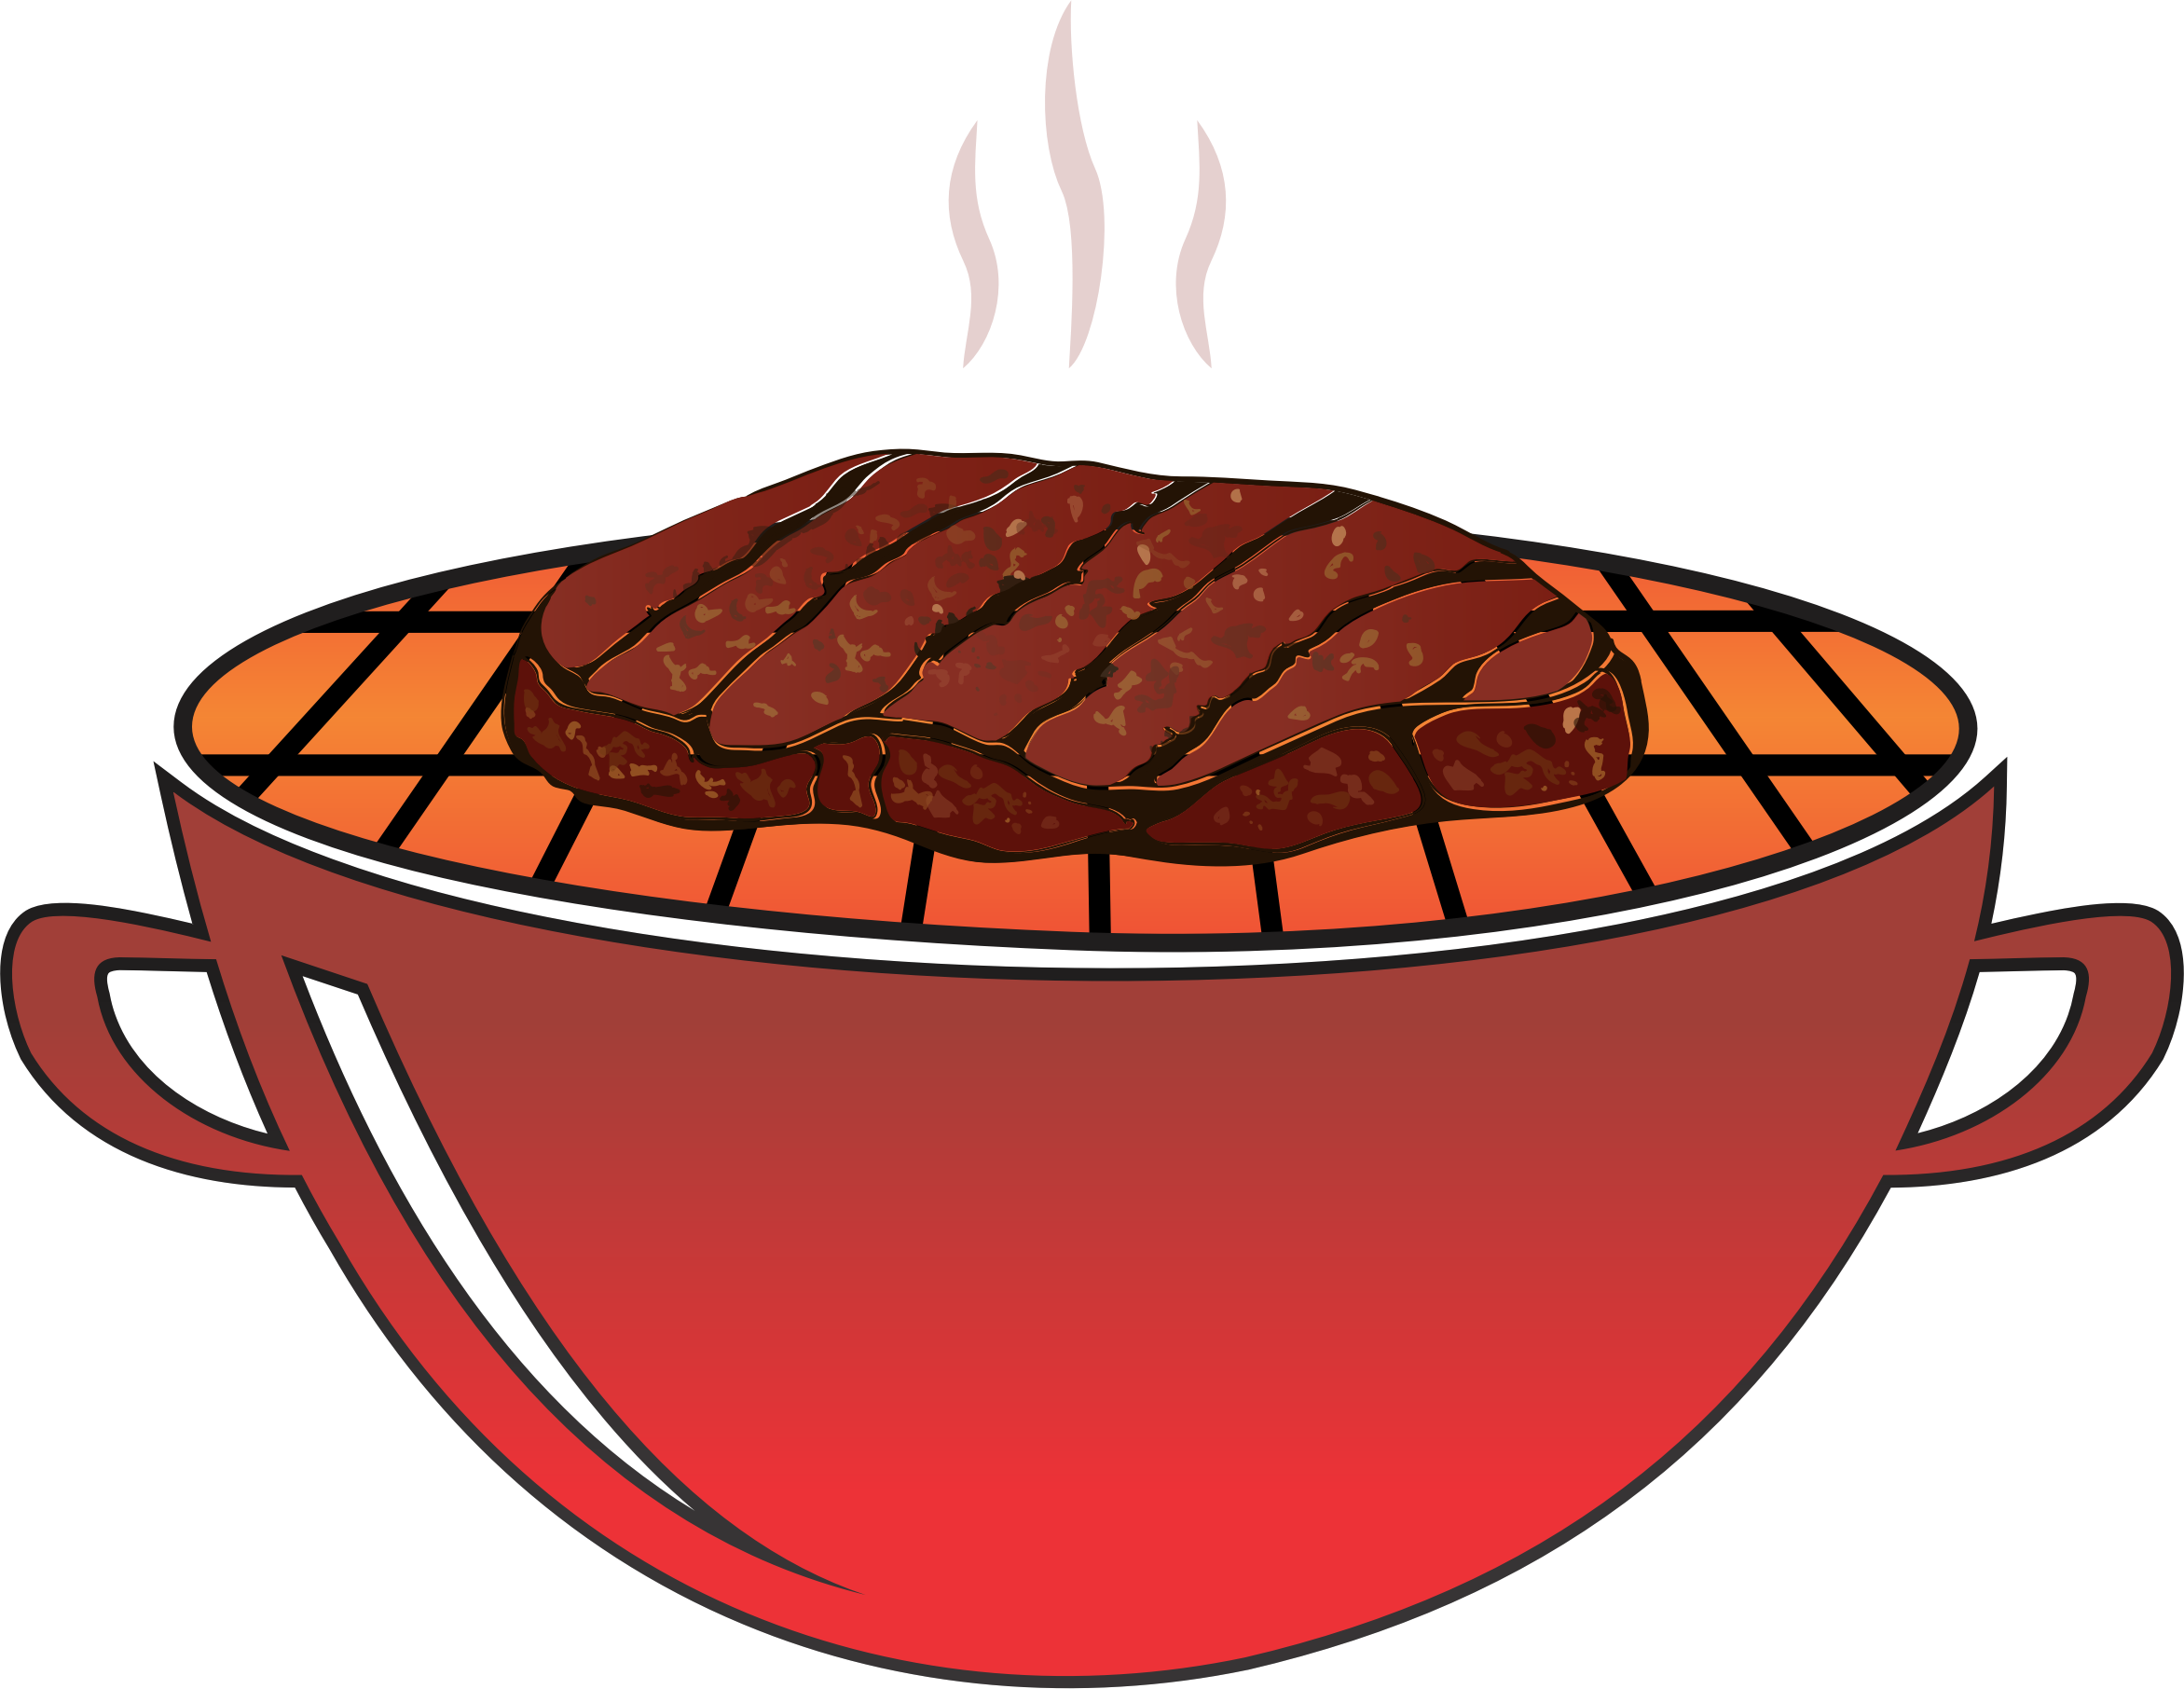 image royalty free download barbecue clipart bbq steak #76388677